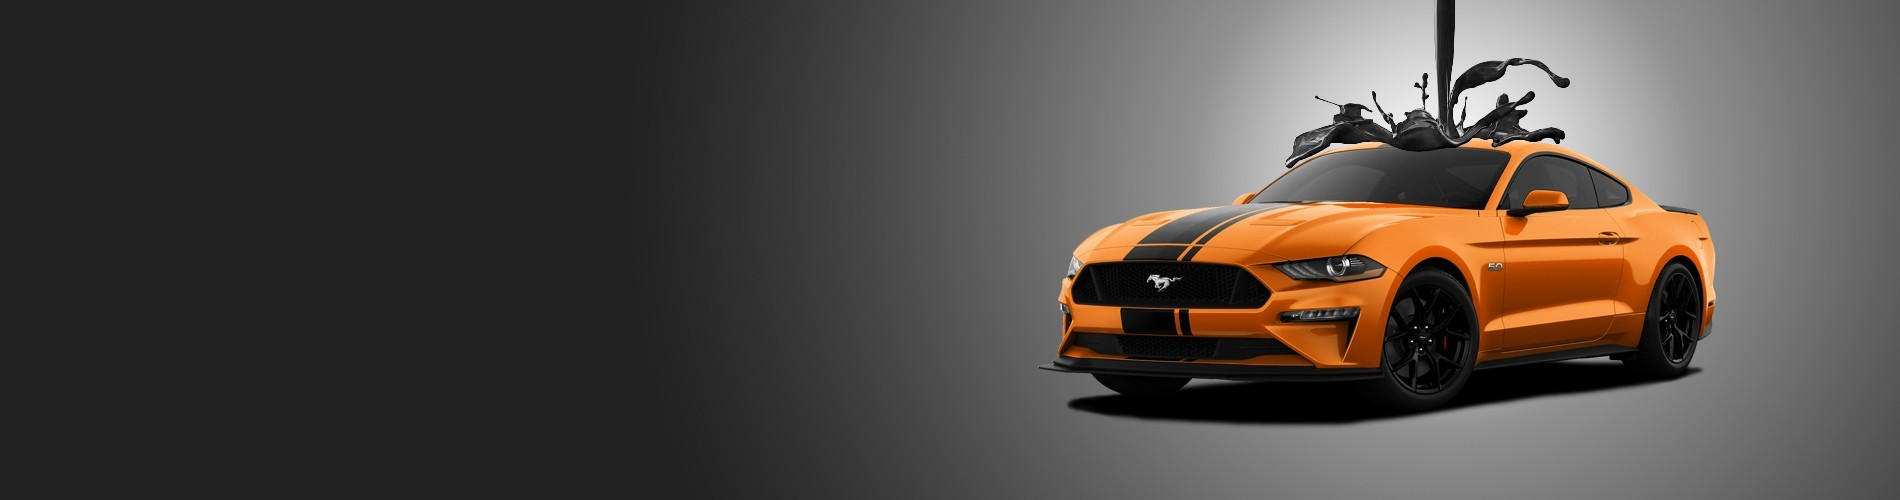 My Beautiful Car - Ford Mustang Decals